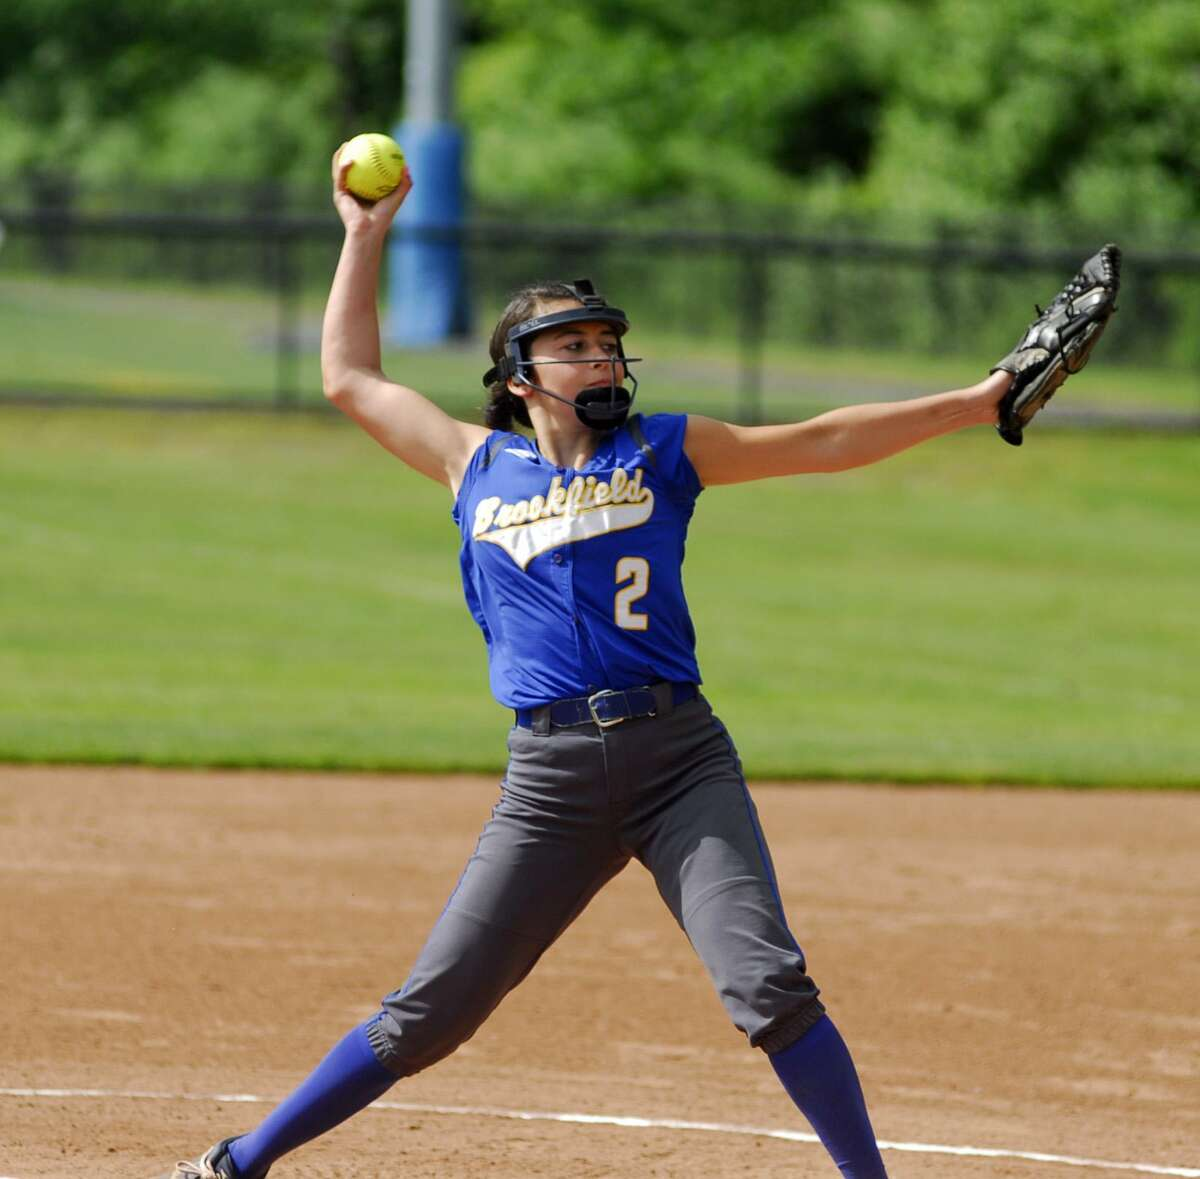 Brookfield's Alyssa Lionetti throws a pitch during a game against Lyman Hall on Friday.